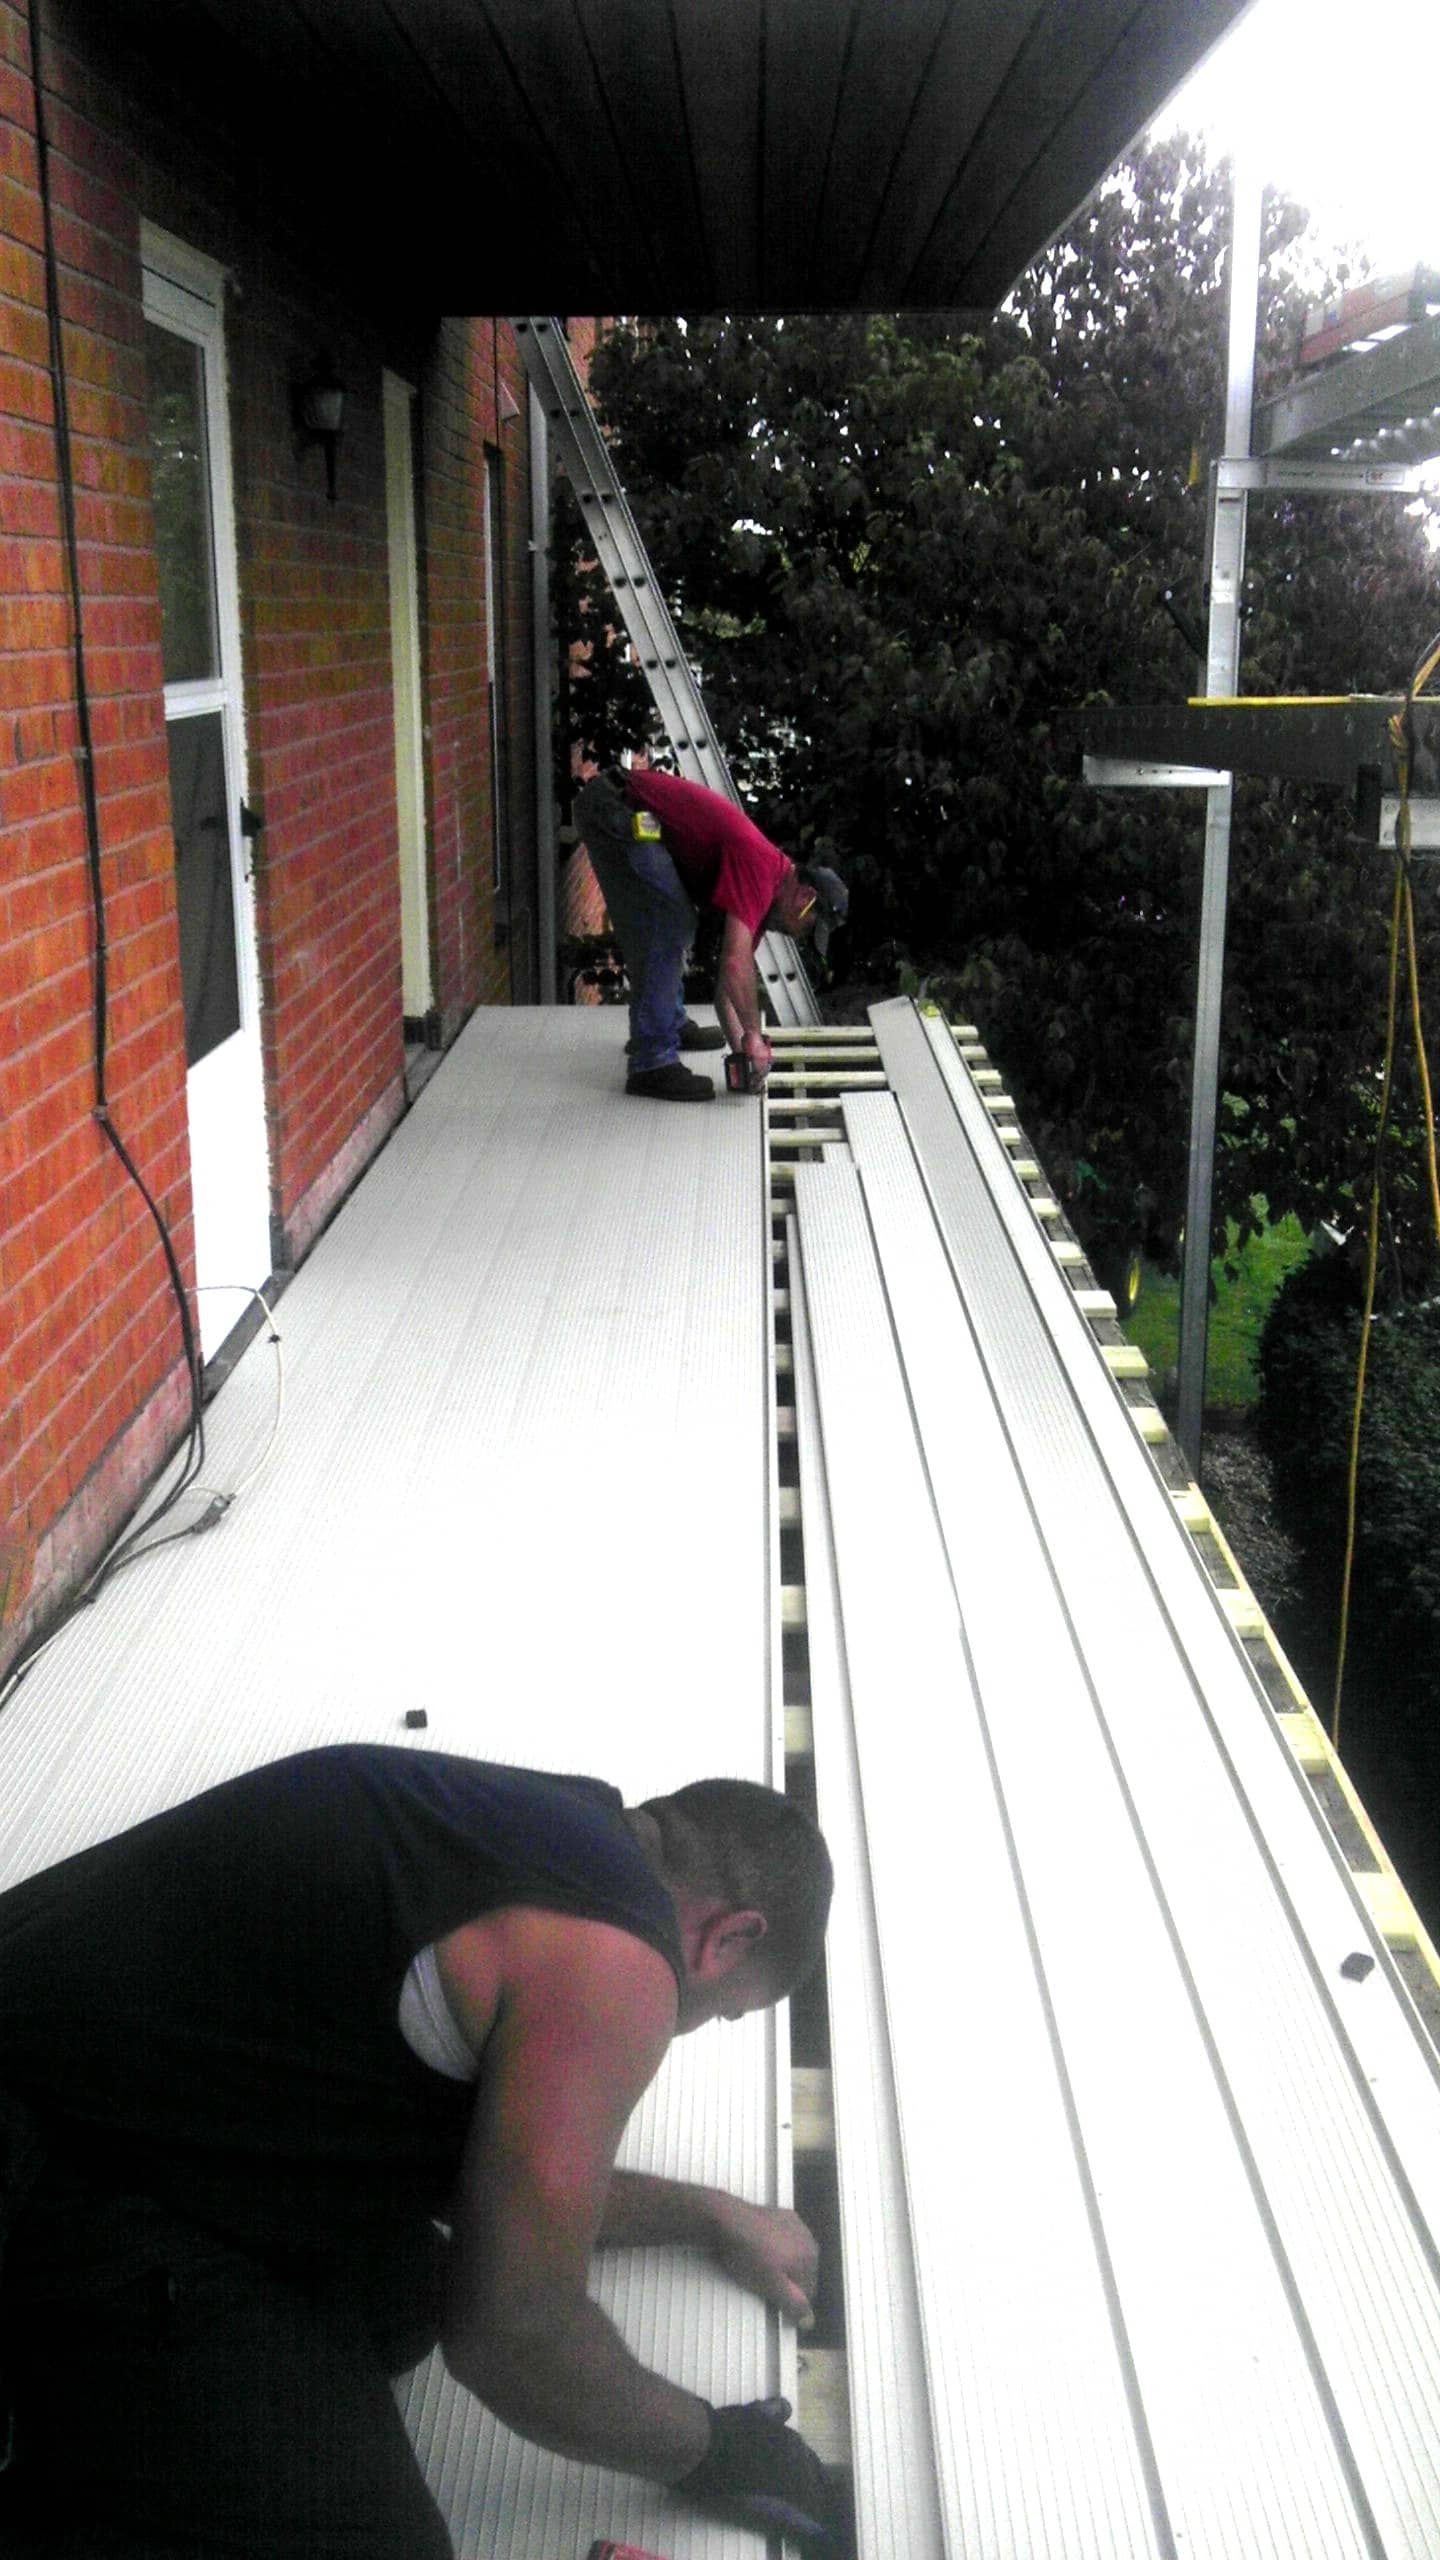 ariddek aluminum decking boards at Village Green Apartments by Wahoo Decks